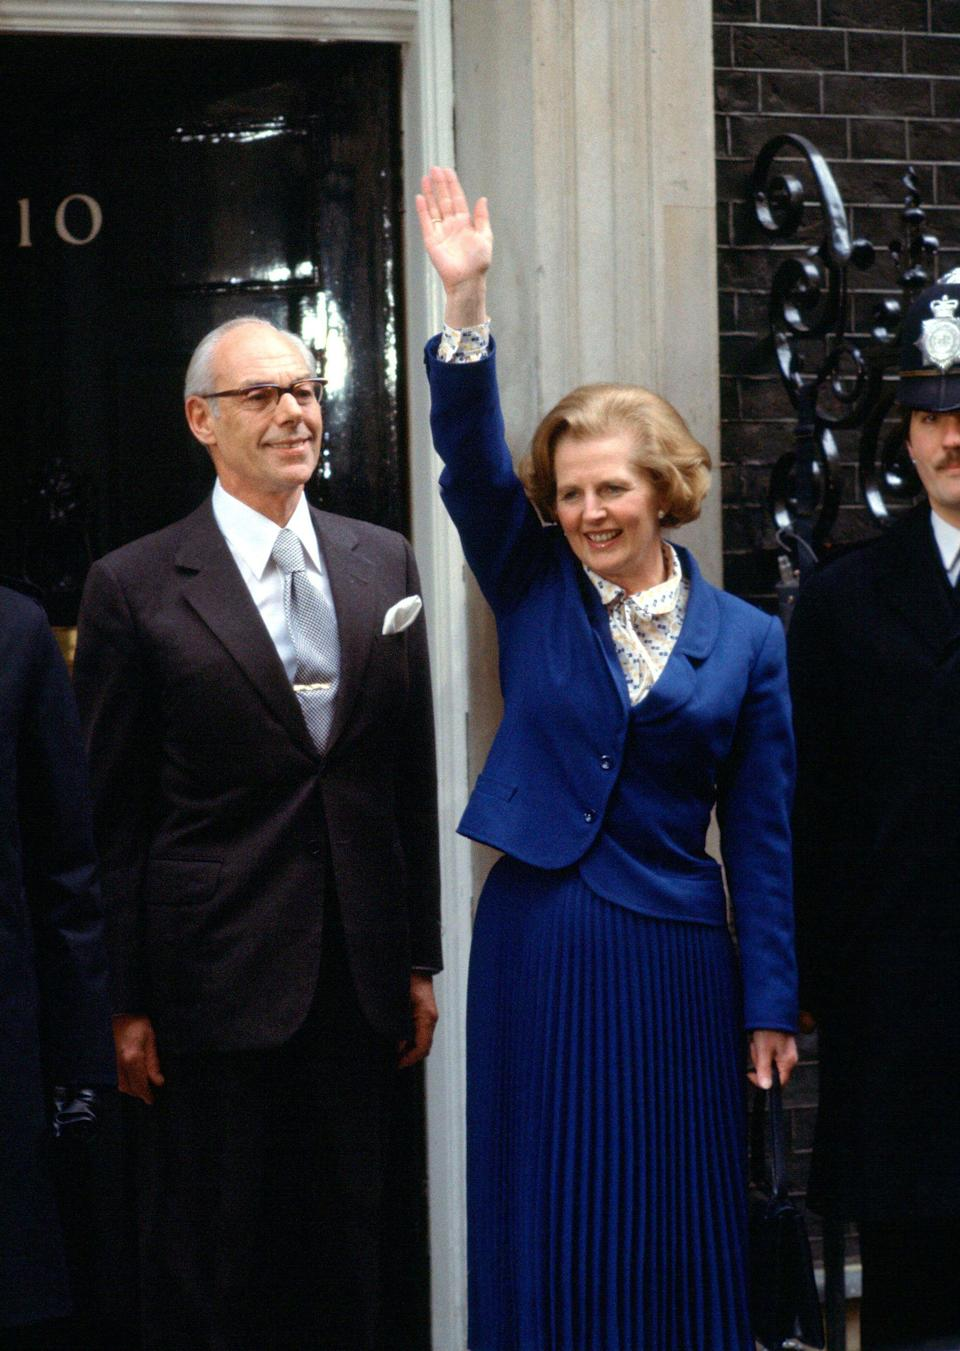 <p>Margaret Thatcher and her husband Denis entering No. 10, following her election win in 1979.</p>